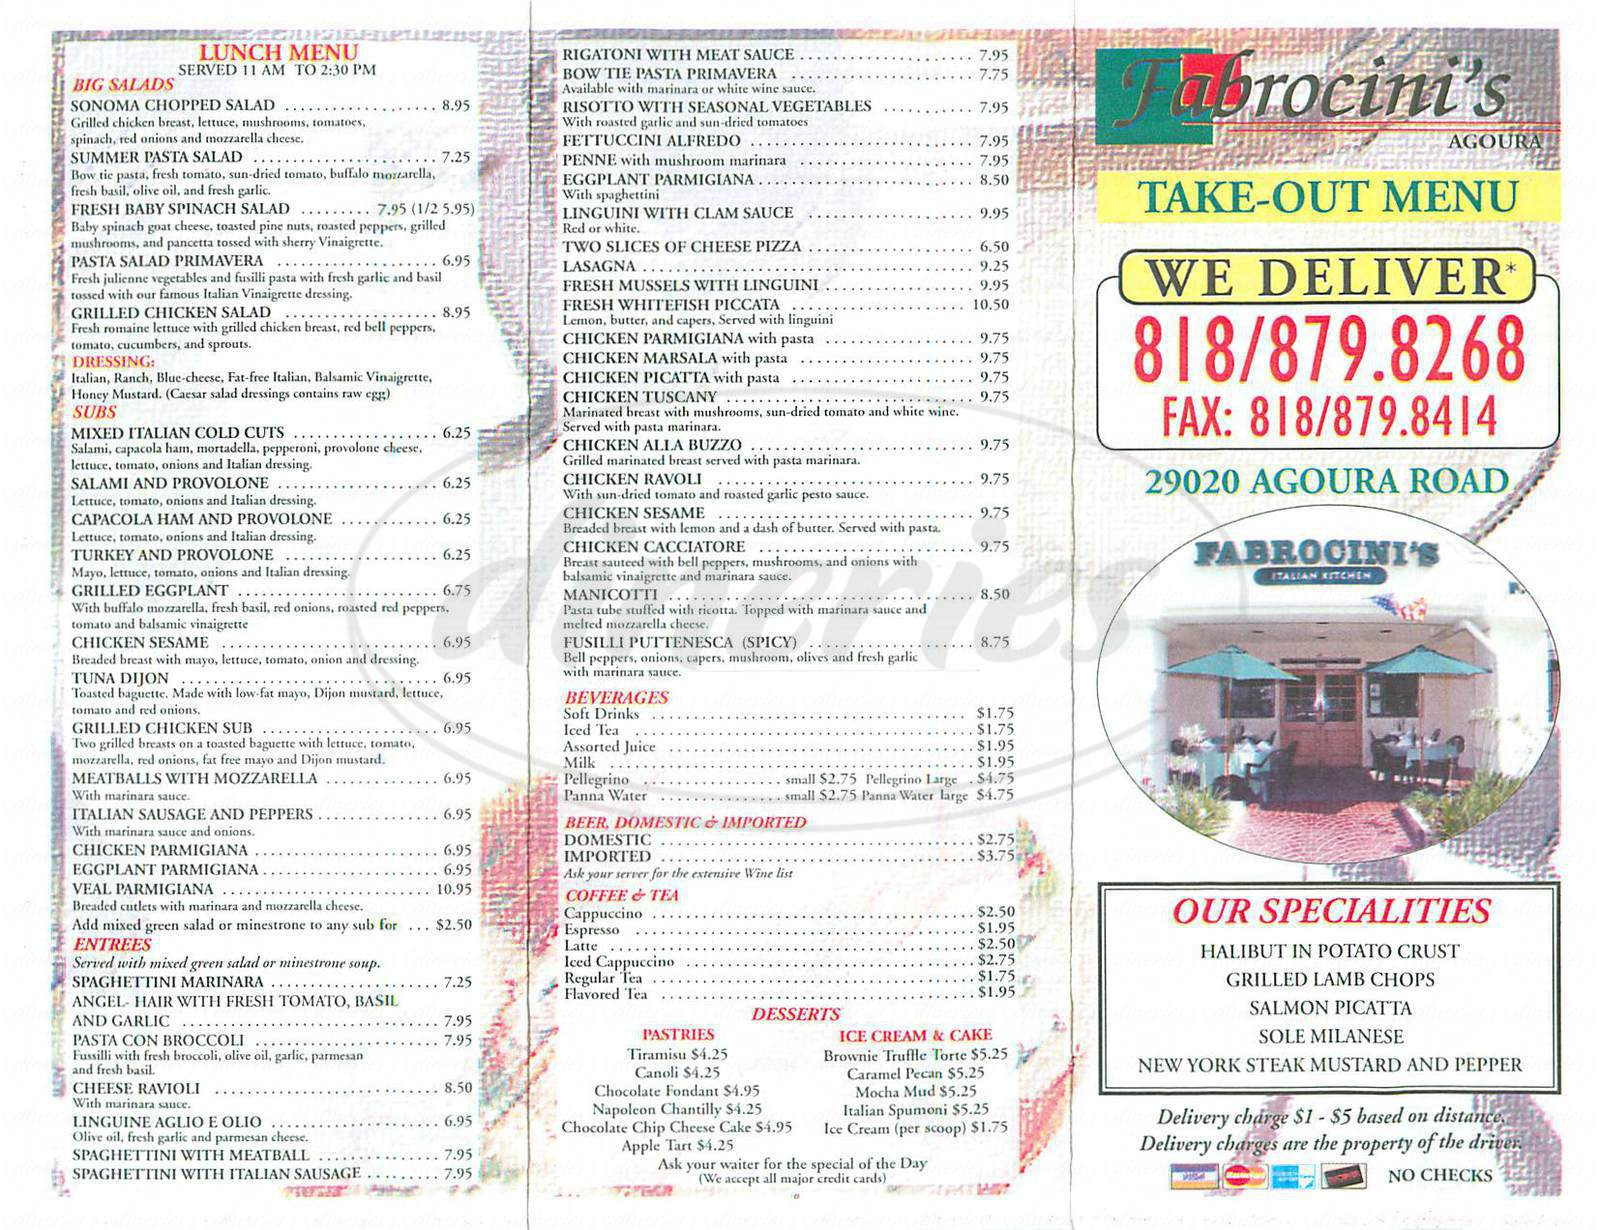 menu for Fabrocinis Italian Kitchen